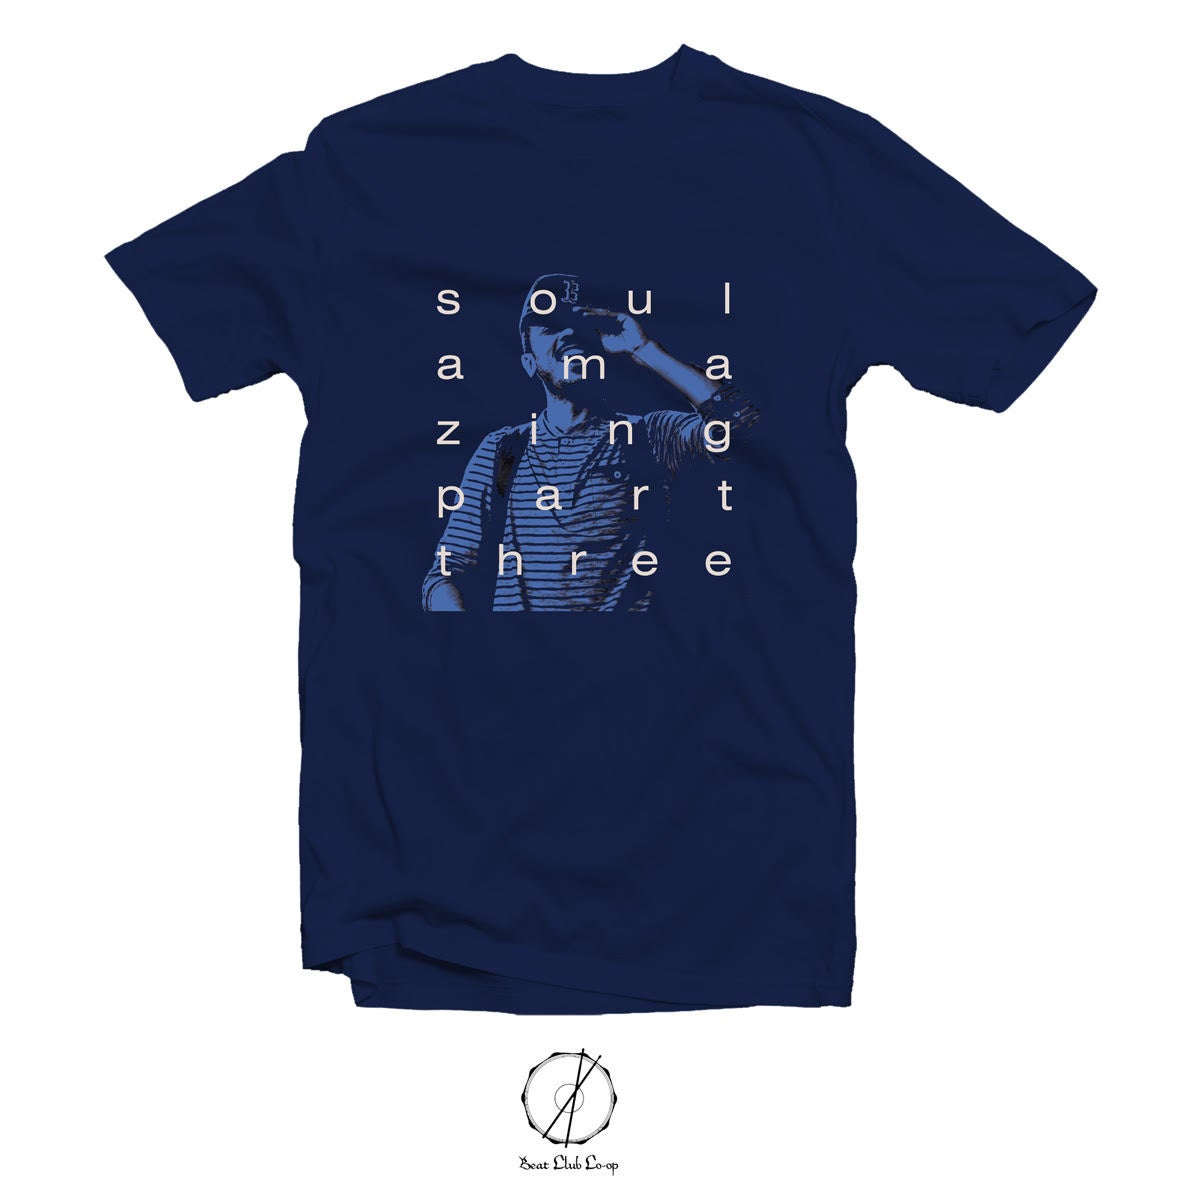 Image of blu soul amazing vol.3 tee